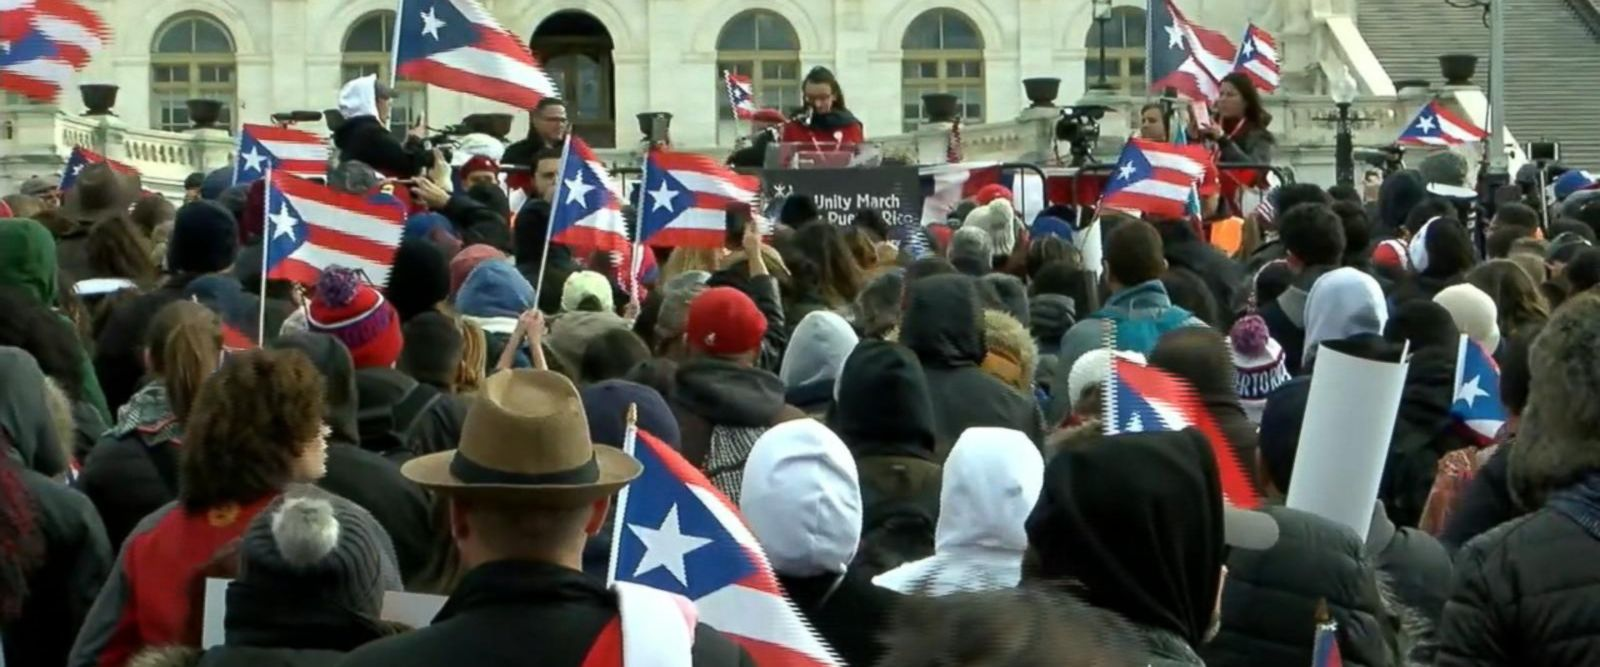 VIDEO: Unity March for Puerto Rico held Sunday in nation's capital